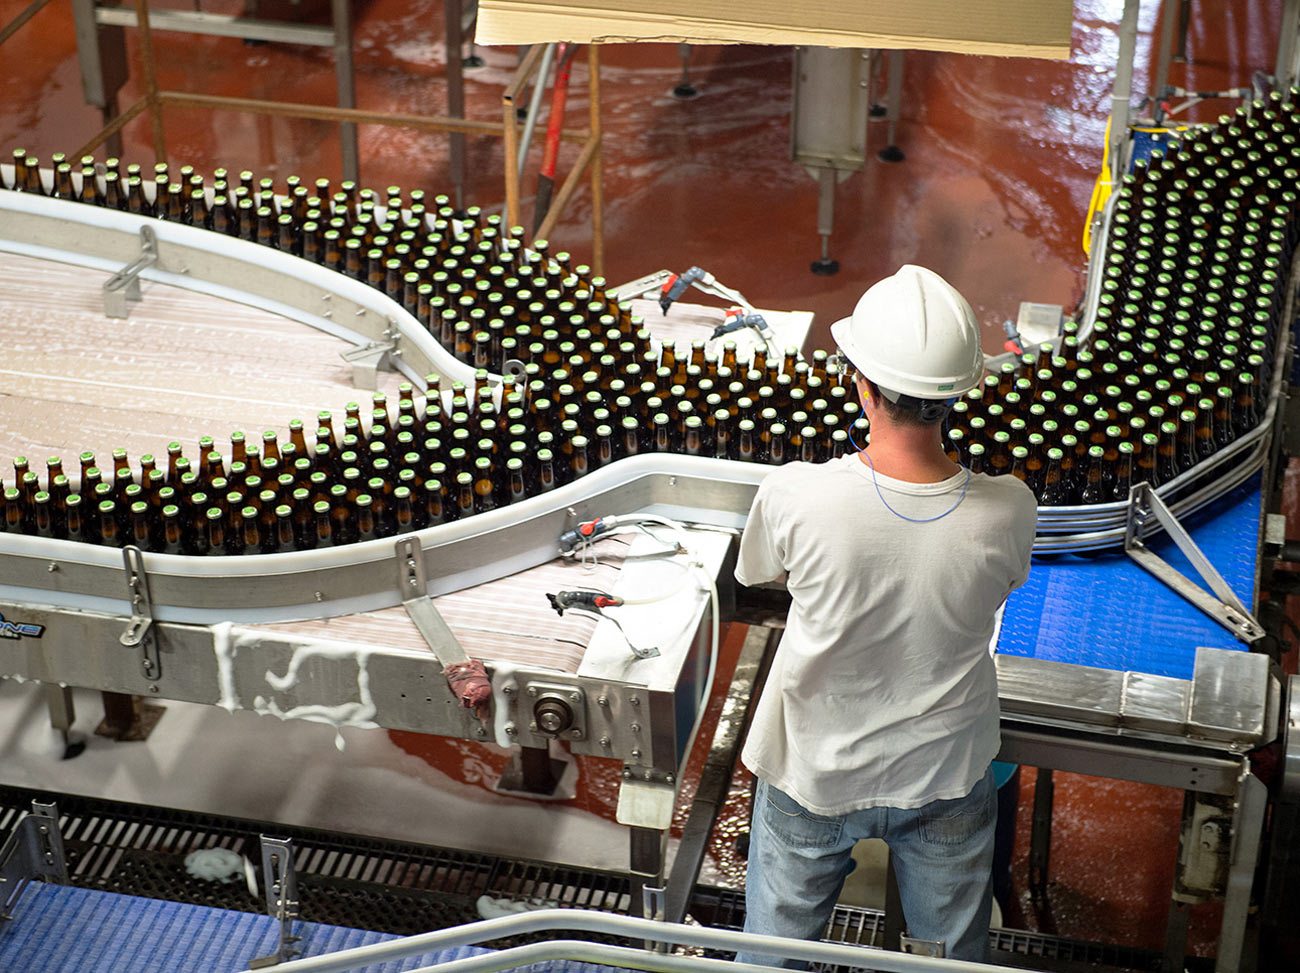 Factory worker overseeing conveyer belt of bottles for a product distributor